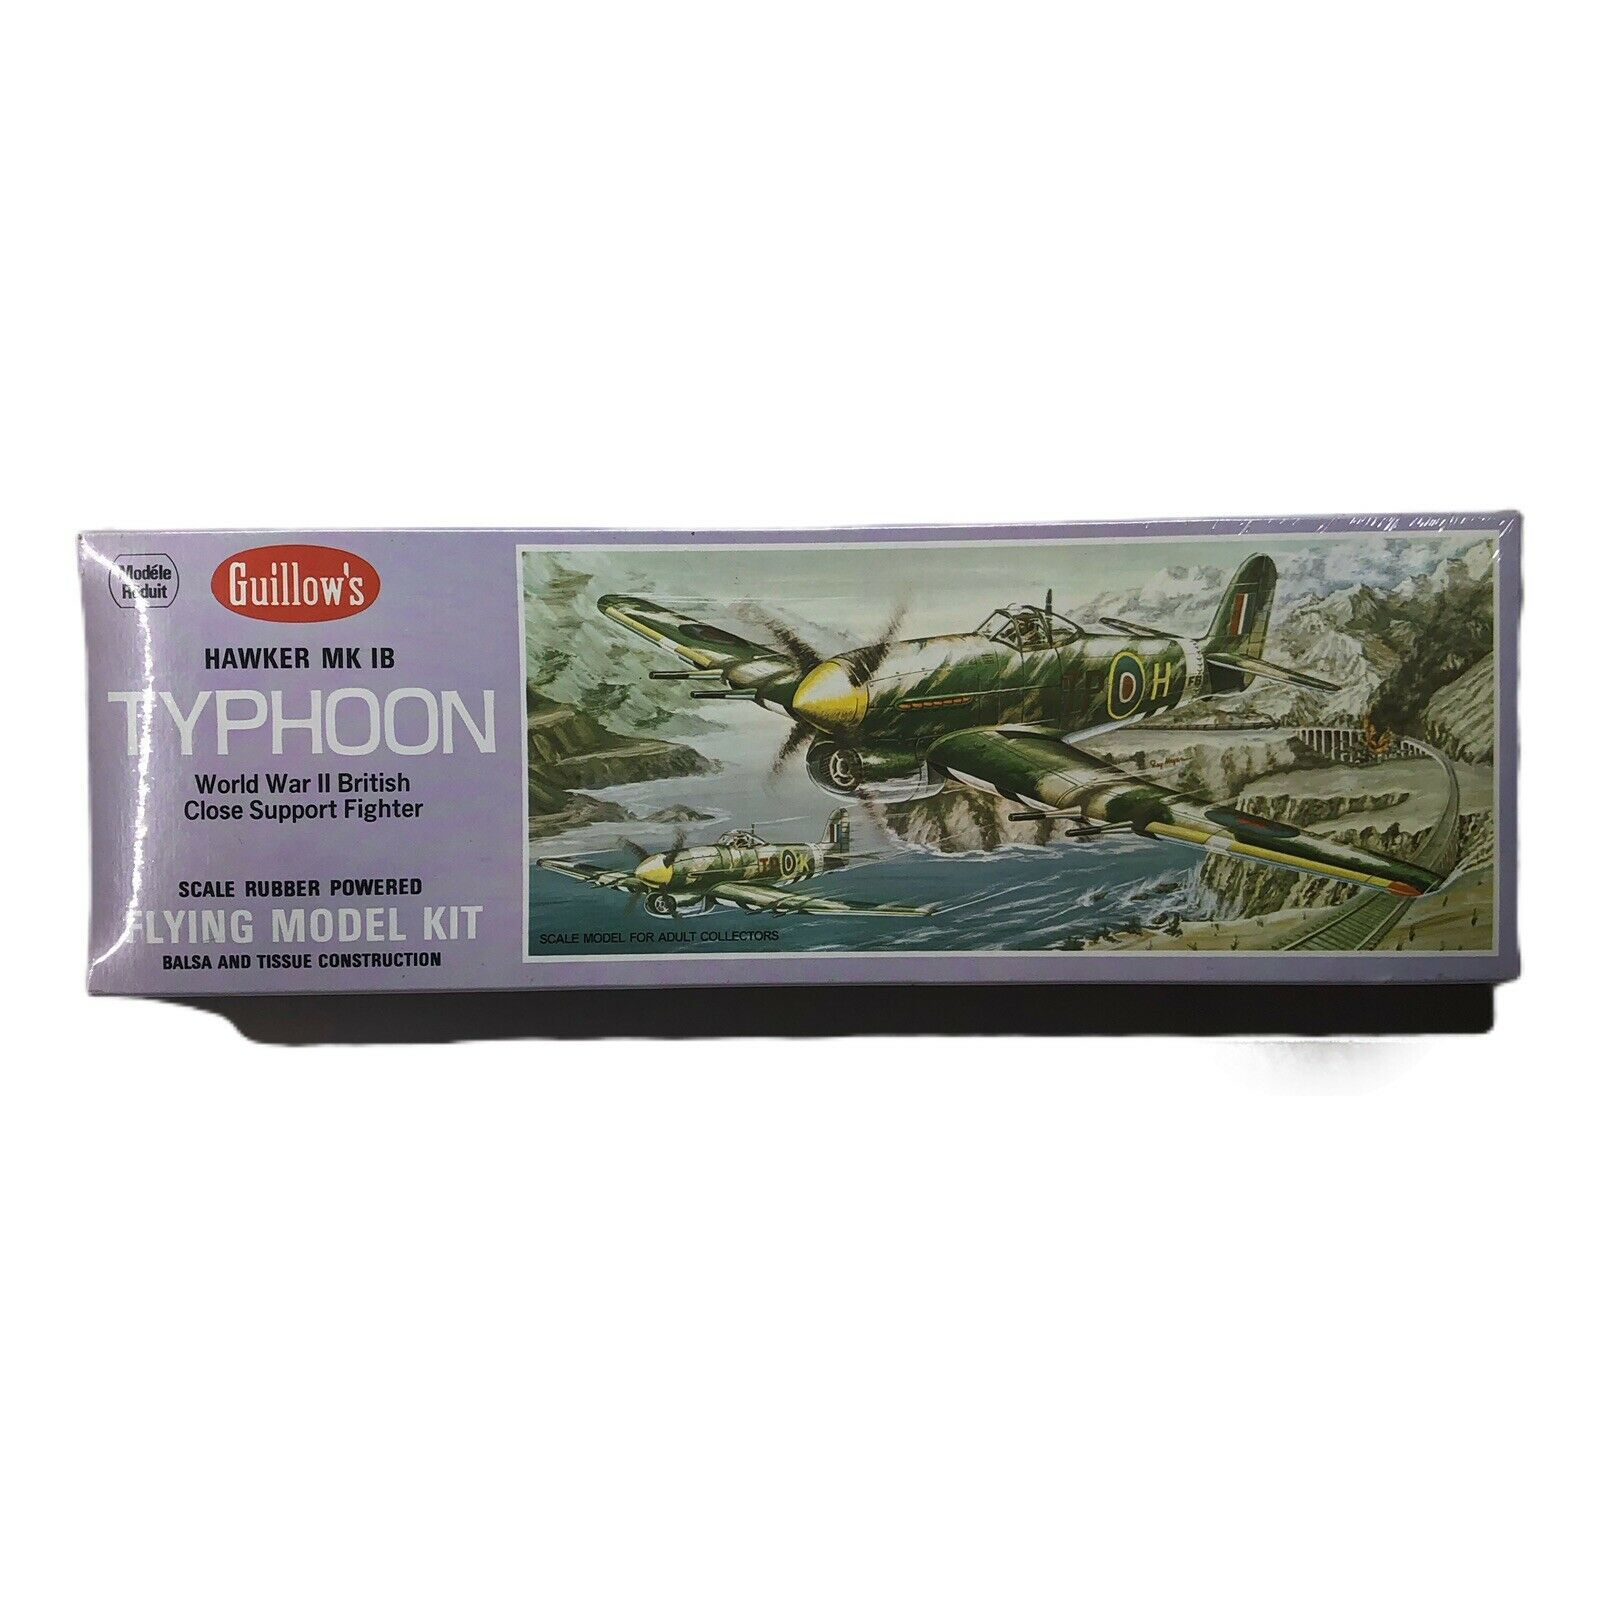 Guillows WWII Hawker MK Typhoon British Support Fighter Flying Plane Model Kit  - $29.99